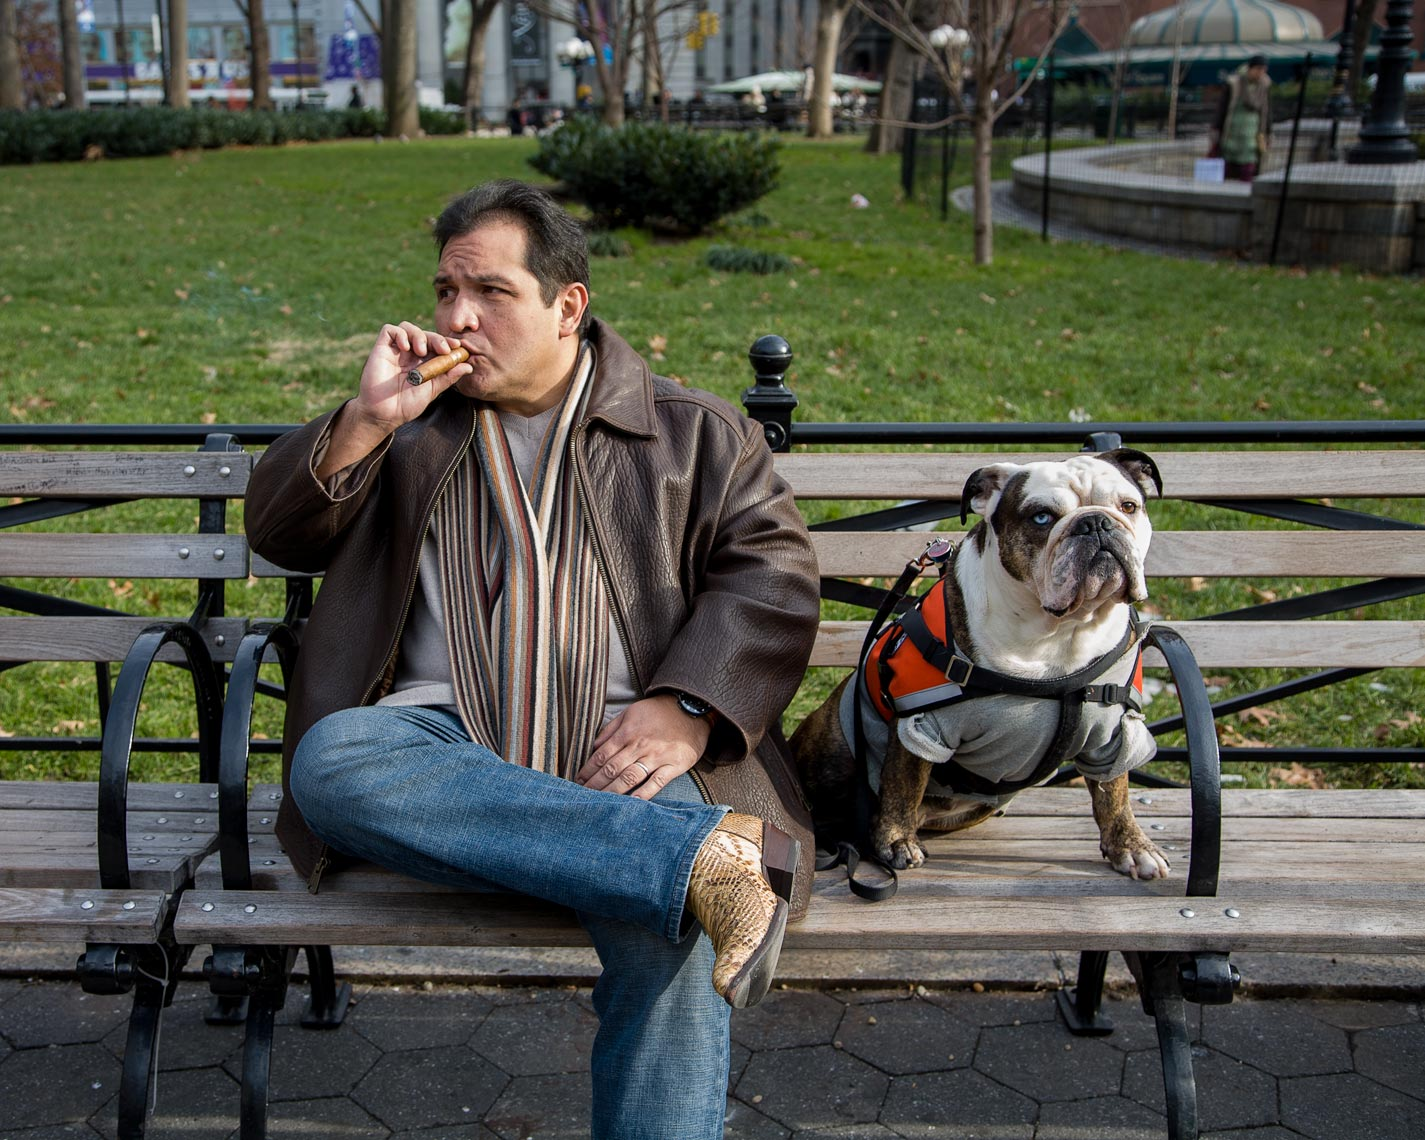 Bulldog and cigar man